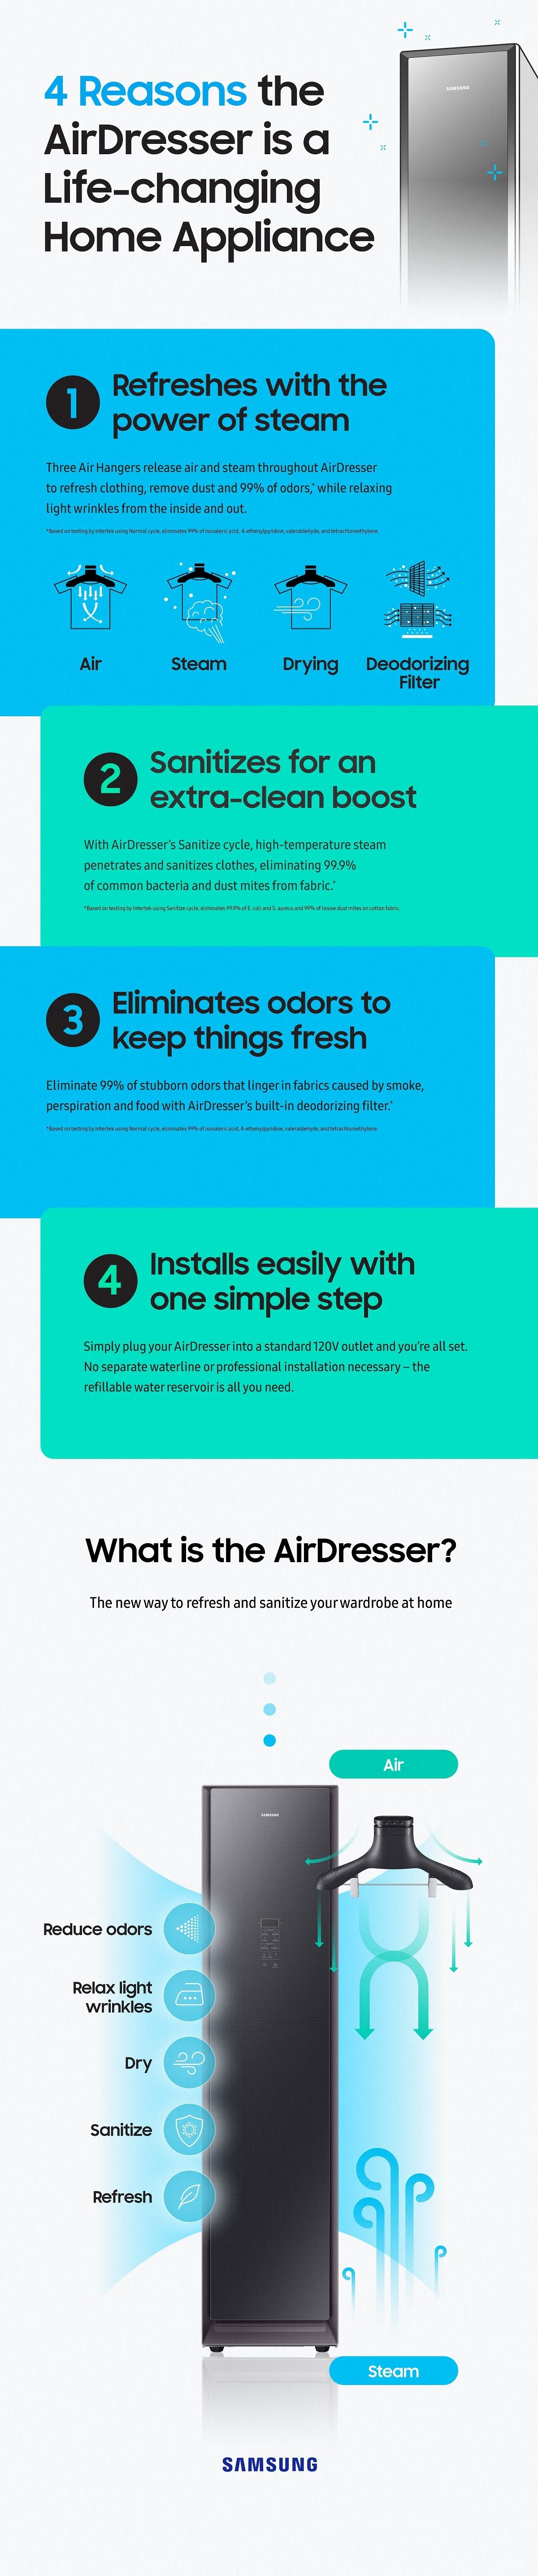 4-reasons-samsungs-airdresser-is-a-life-changing-home-appliance-infographic